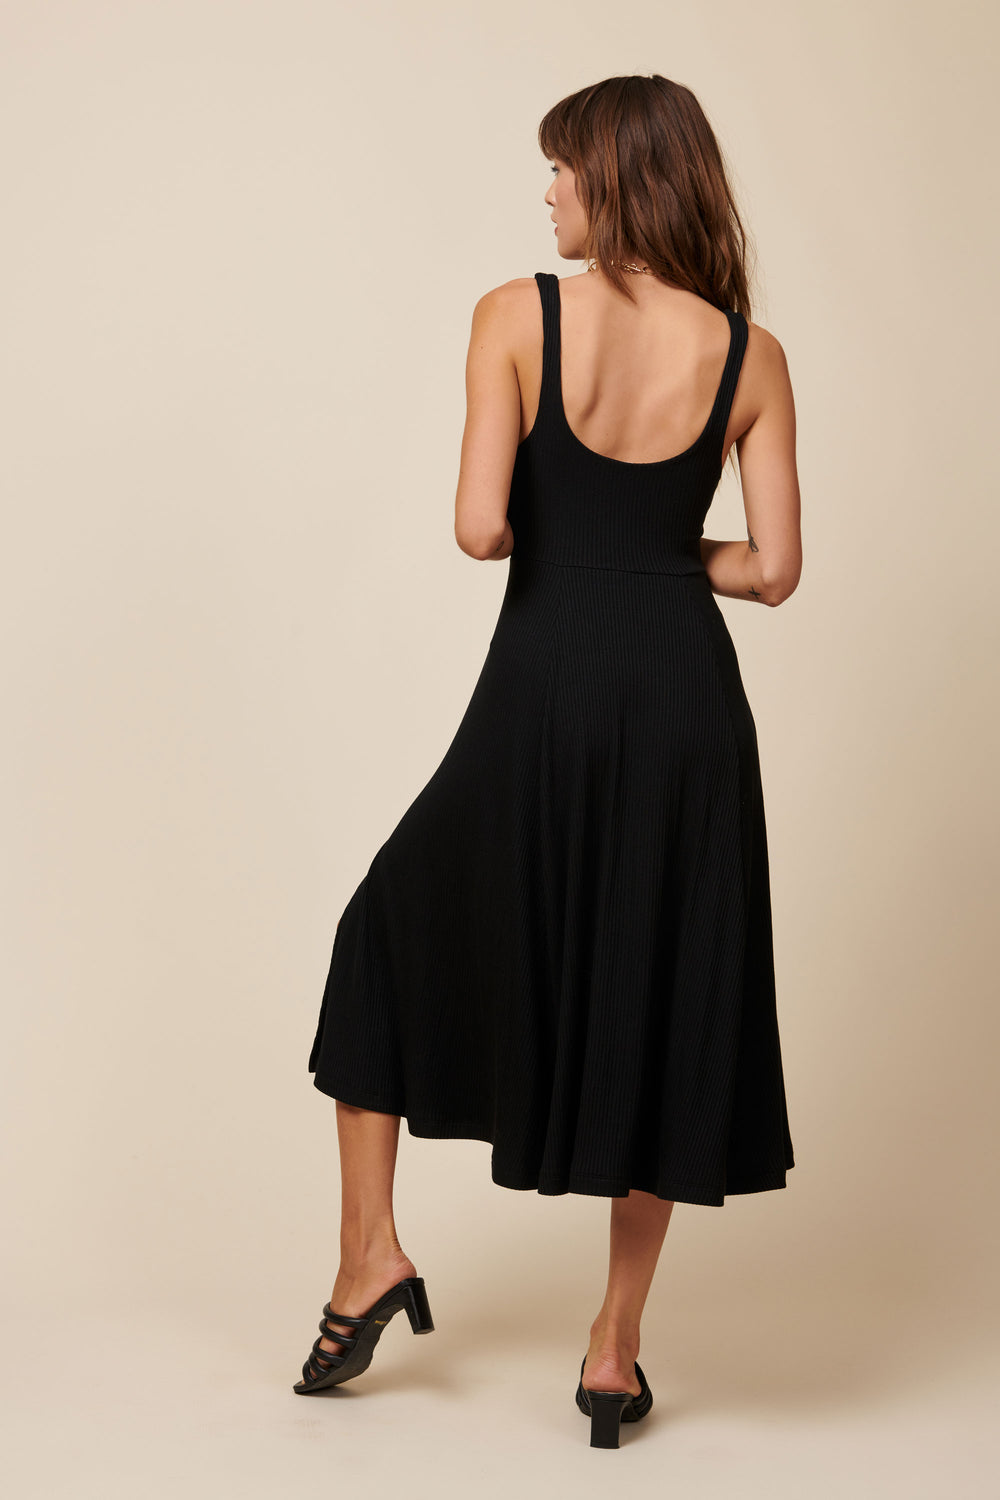 Frankie Dress in Black Rib - Whimsy & Row